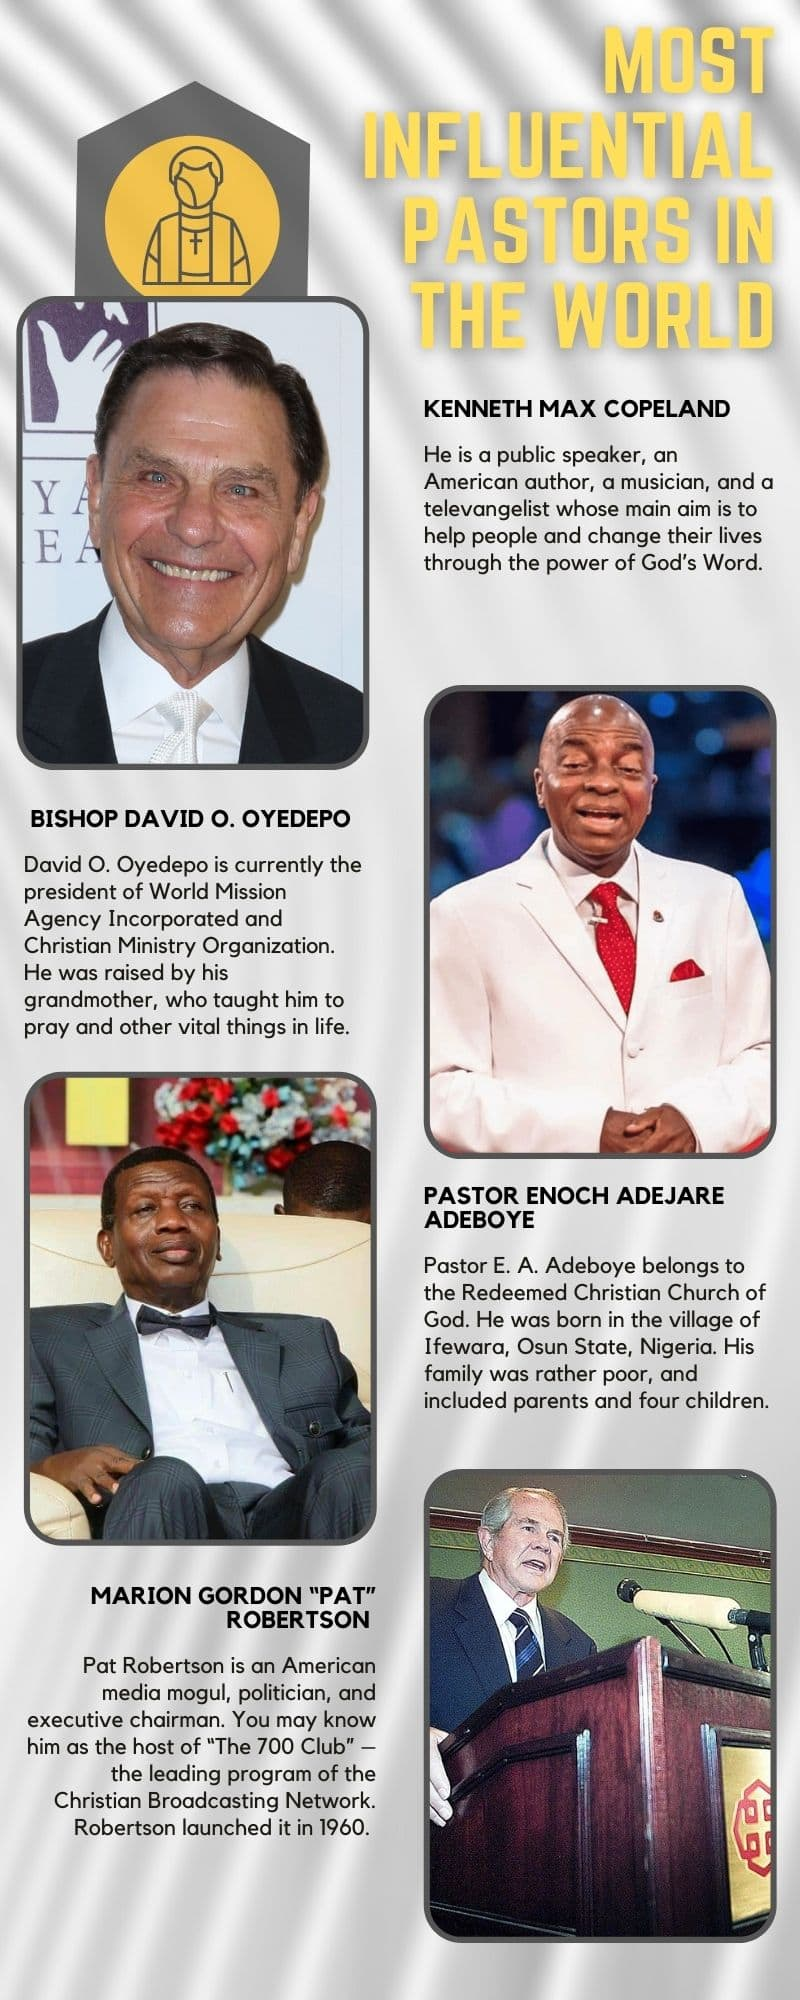 Most influential pastors in the world